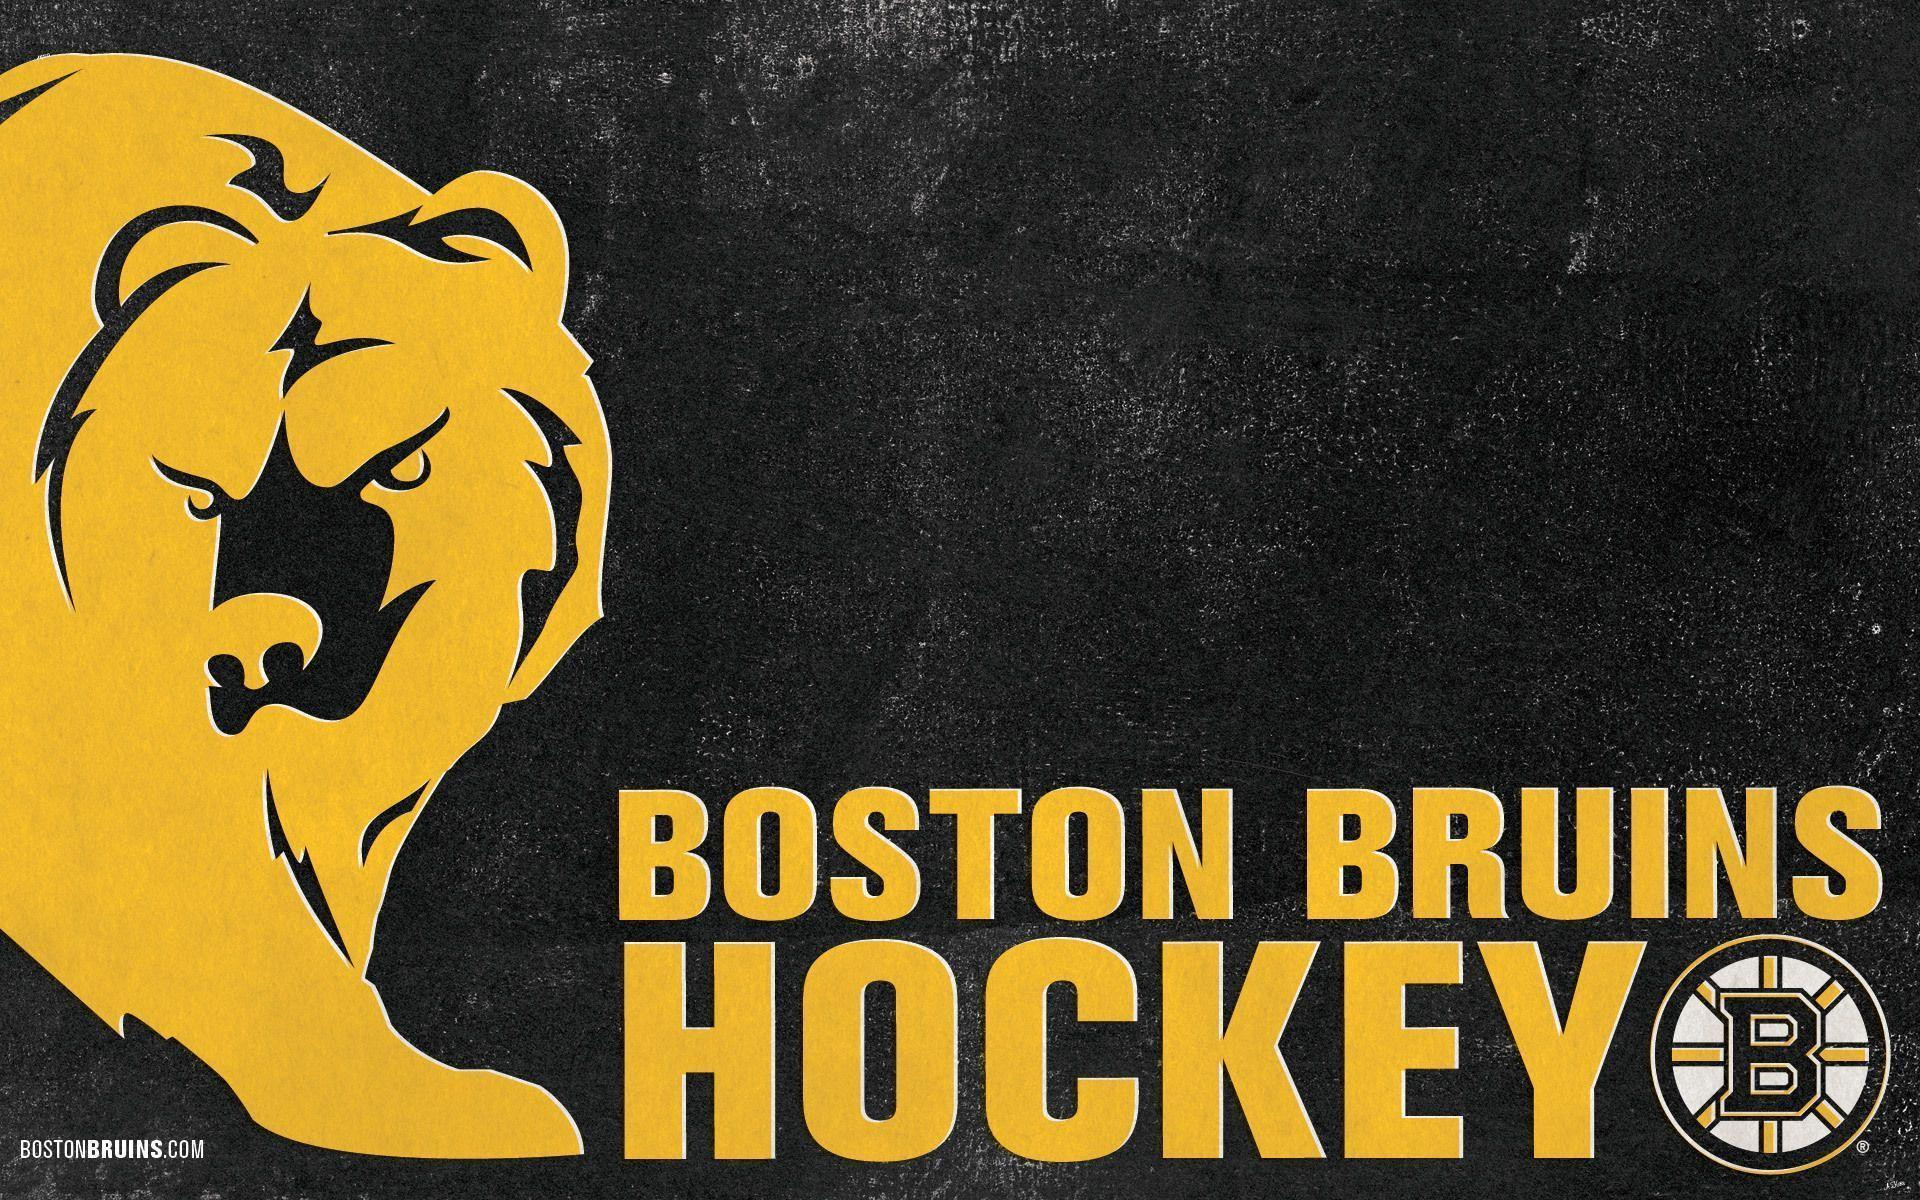 Boston Bruins Best Wallpapers 23950 Images | wallgraf.